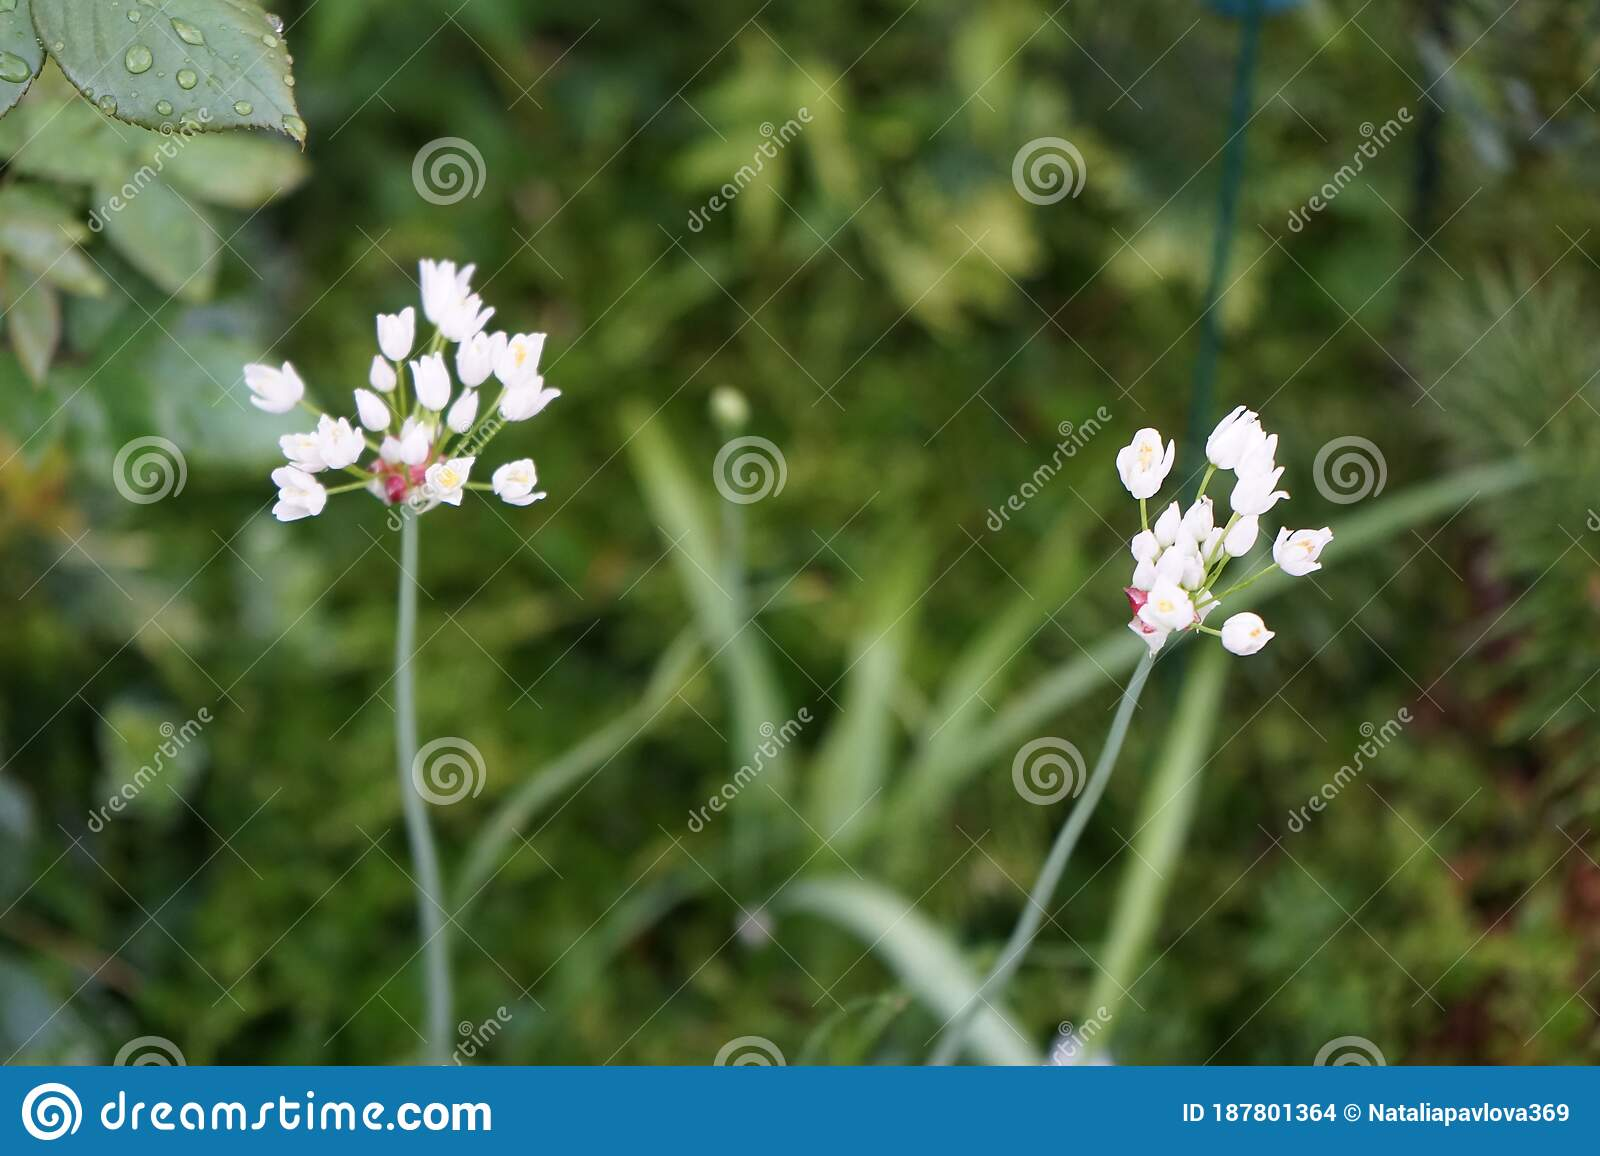 Allium Cernuum Known As Nodding Onion Or Lady S Leek Is A Perennial Plant In The Genus Allium Germany Stock Photo Image Of Genus Meadow 187801364